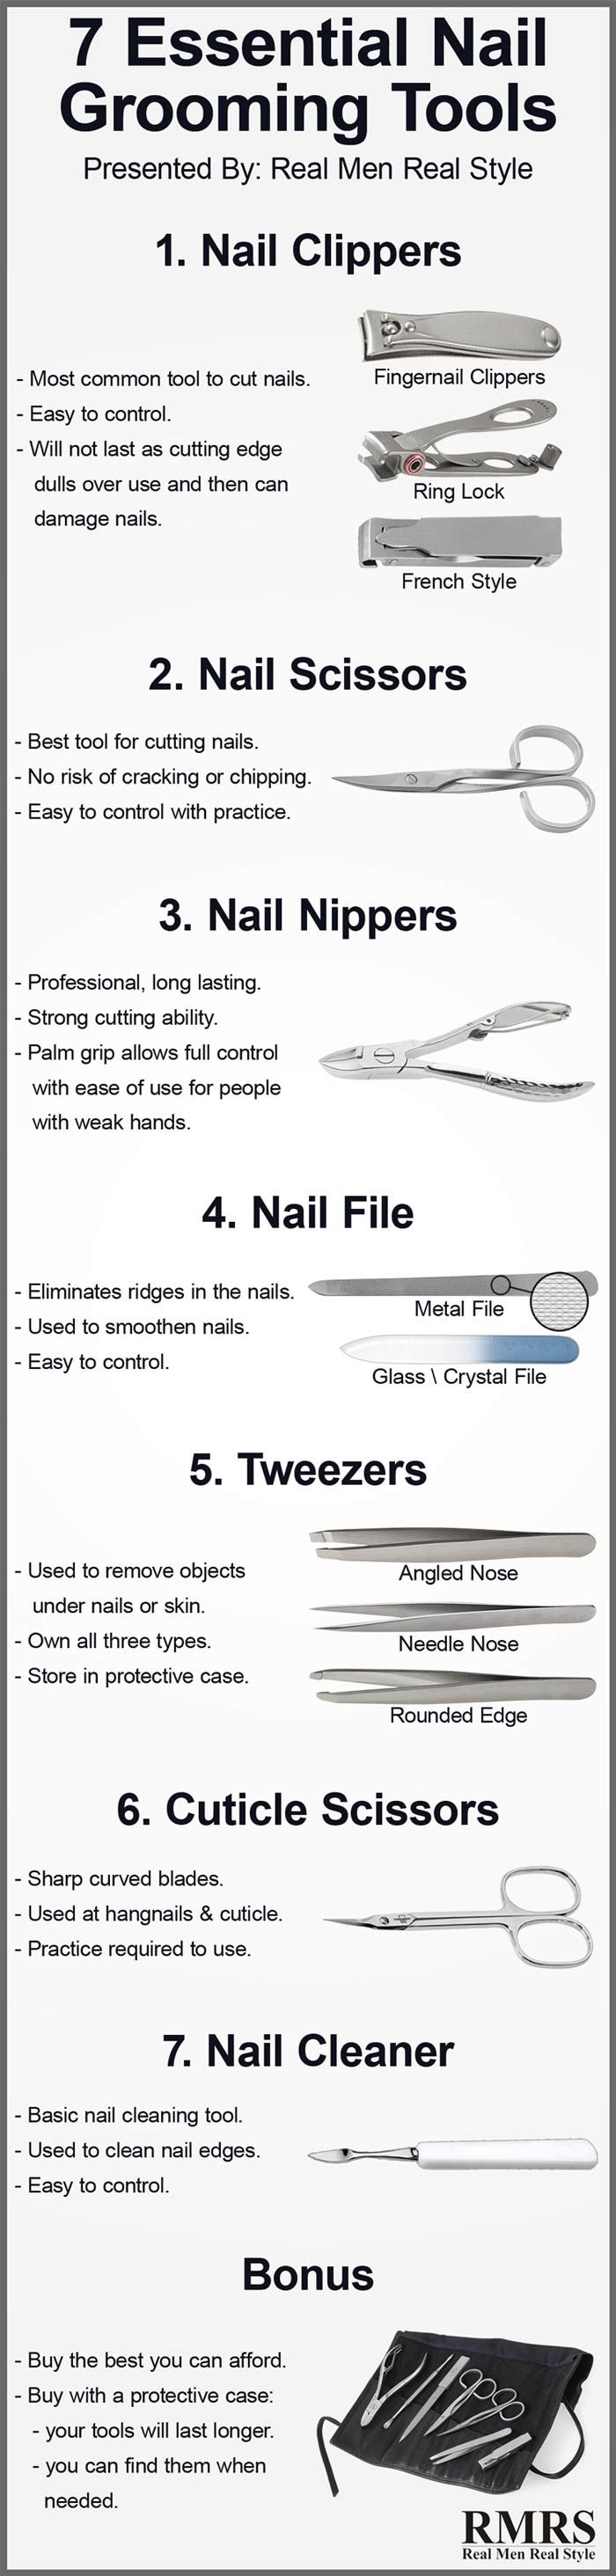 7 Essential Nail Grooming Tools Infographic – Visual To Men's Grooming Tools